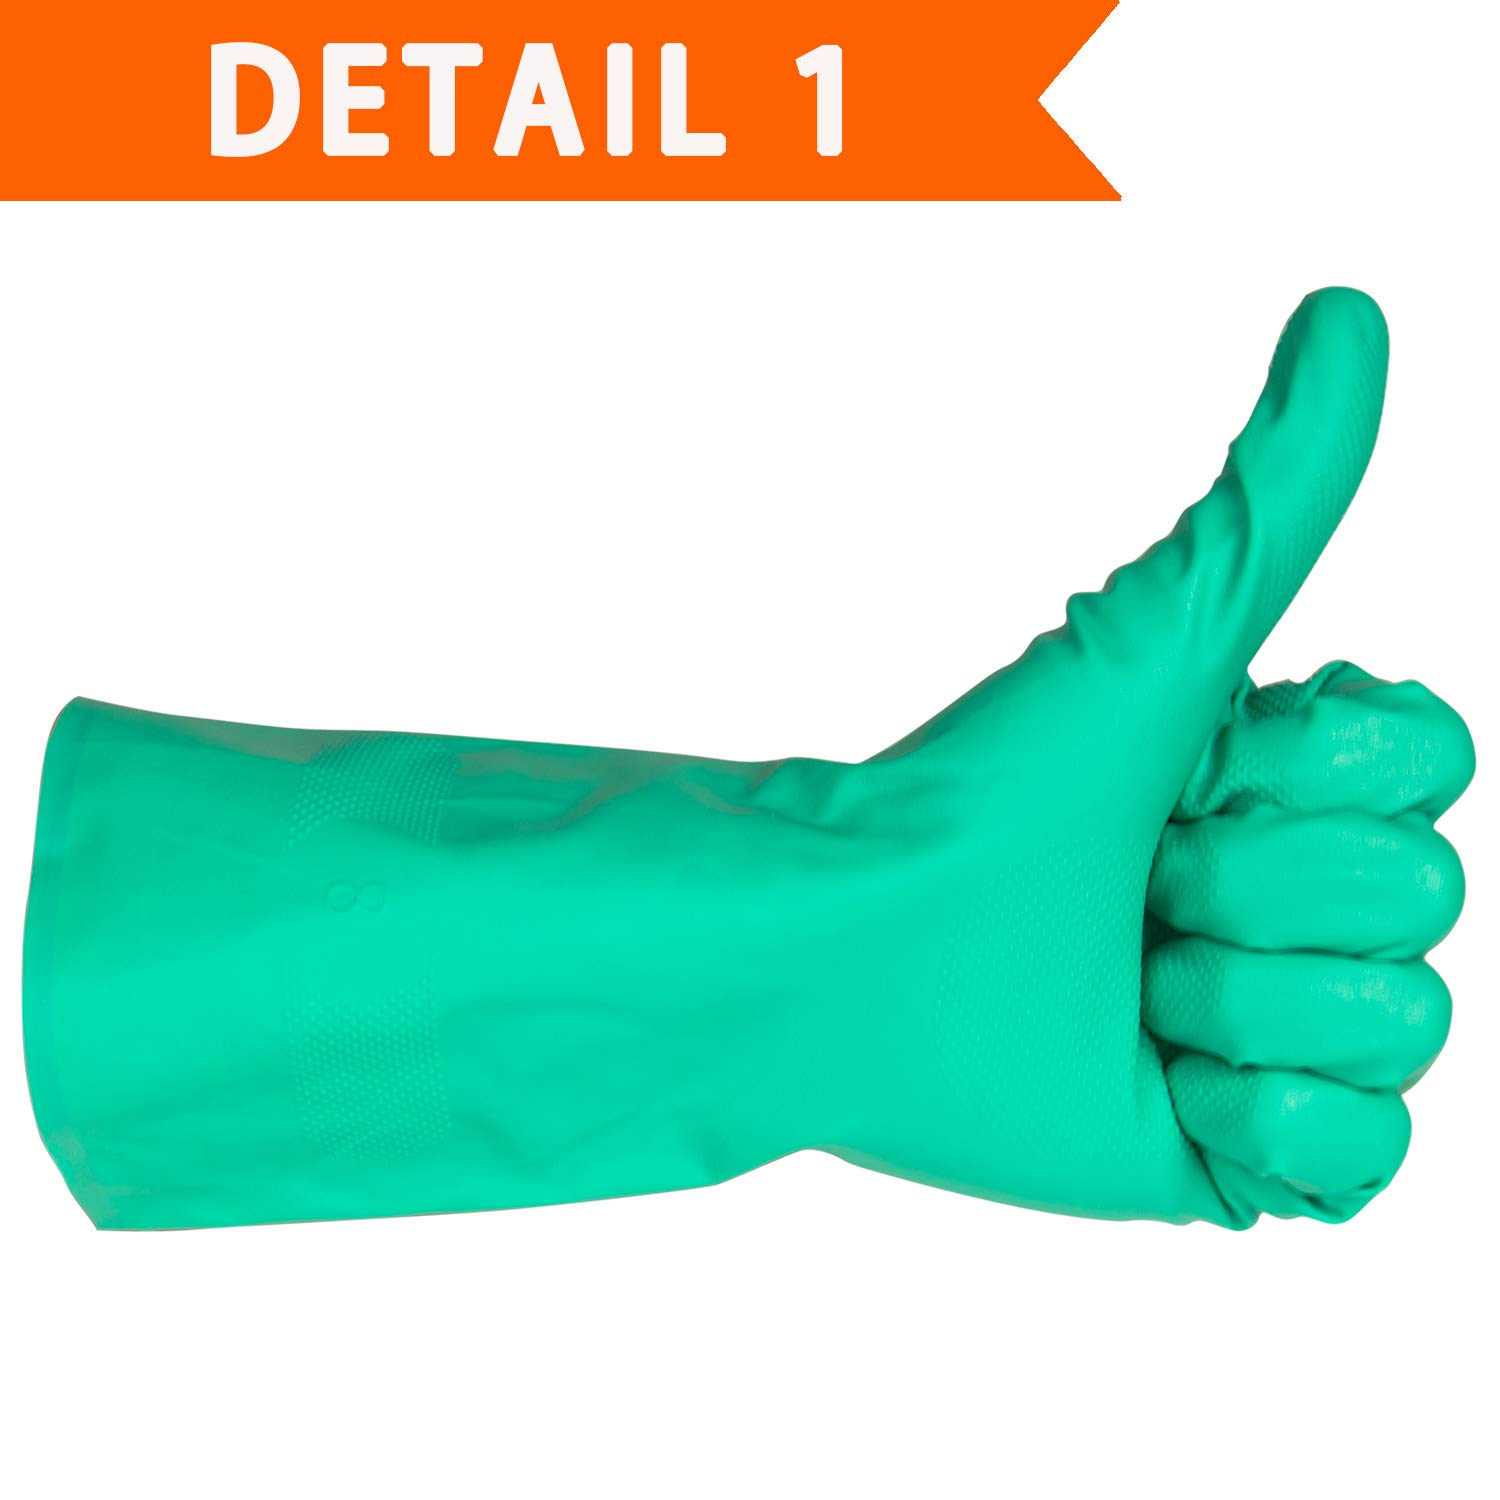 Latex Rubber Free Resist Household Acid ThxToms Nitrile Chemical Resistant Gloves Solvent and Oil Alkali 1 Pair Medium